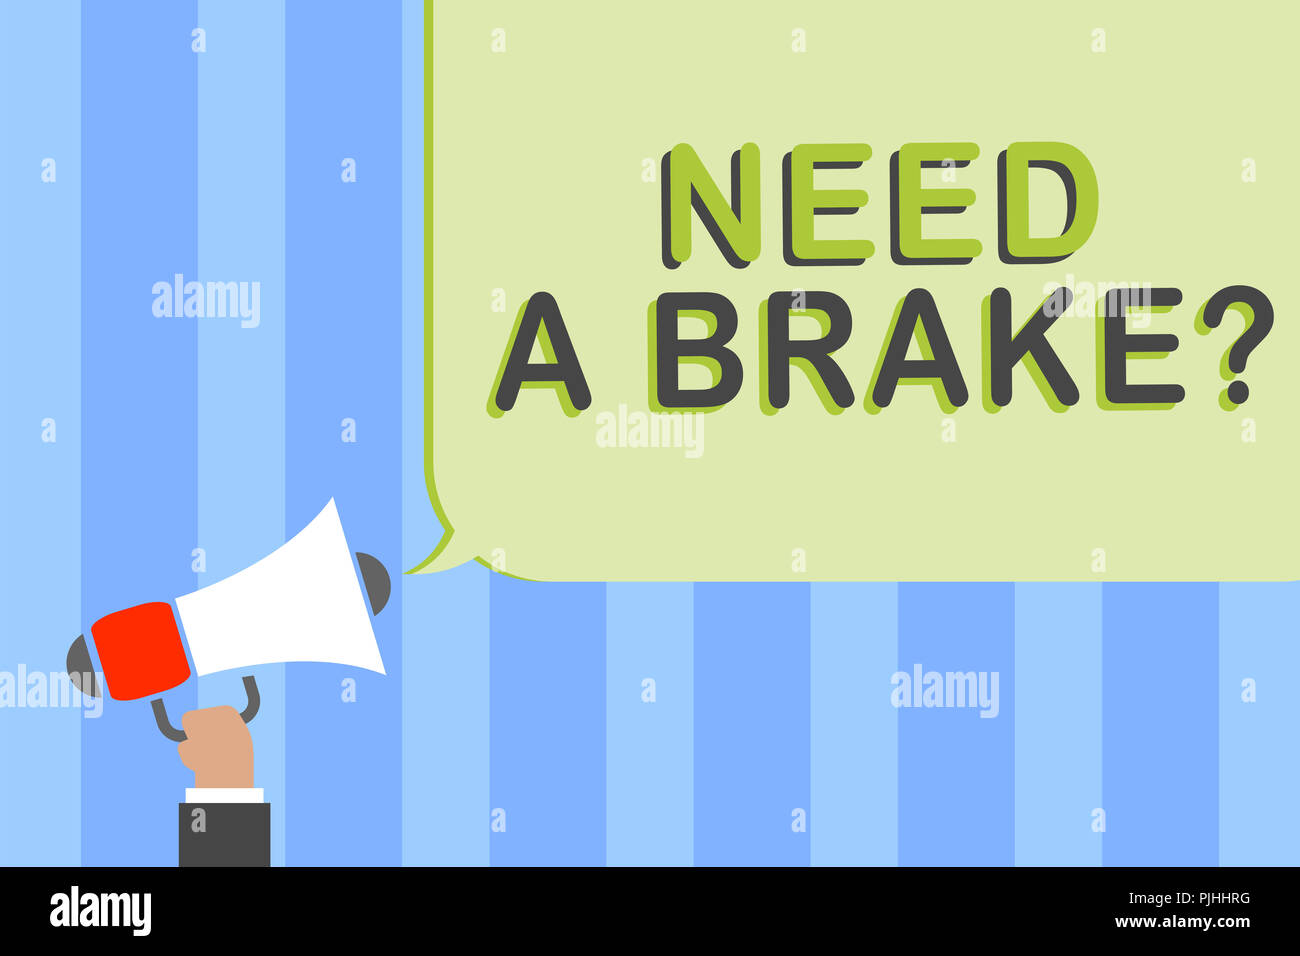 Writing note showing Need A Brake question. Business photo showcasing More Time to Relax Chill Out Freedom Stress Free Man holding megaphone loudspeak - Stock Image